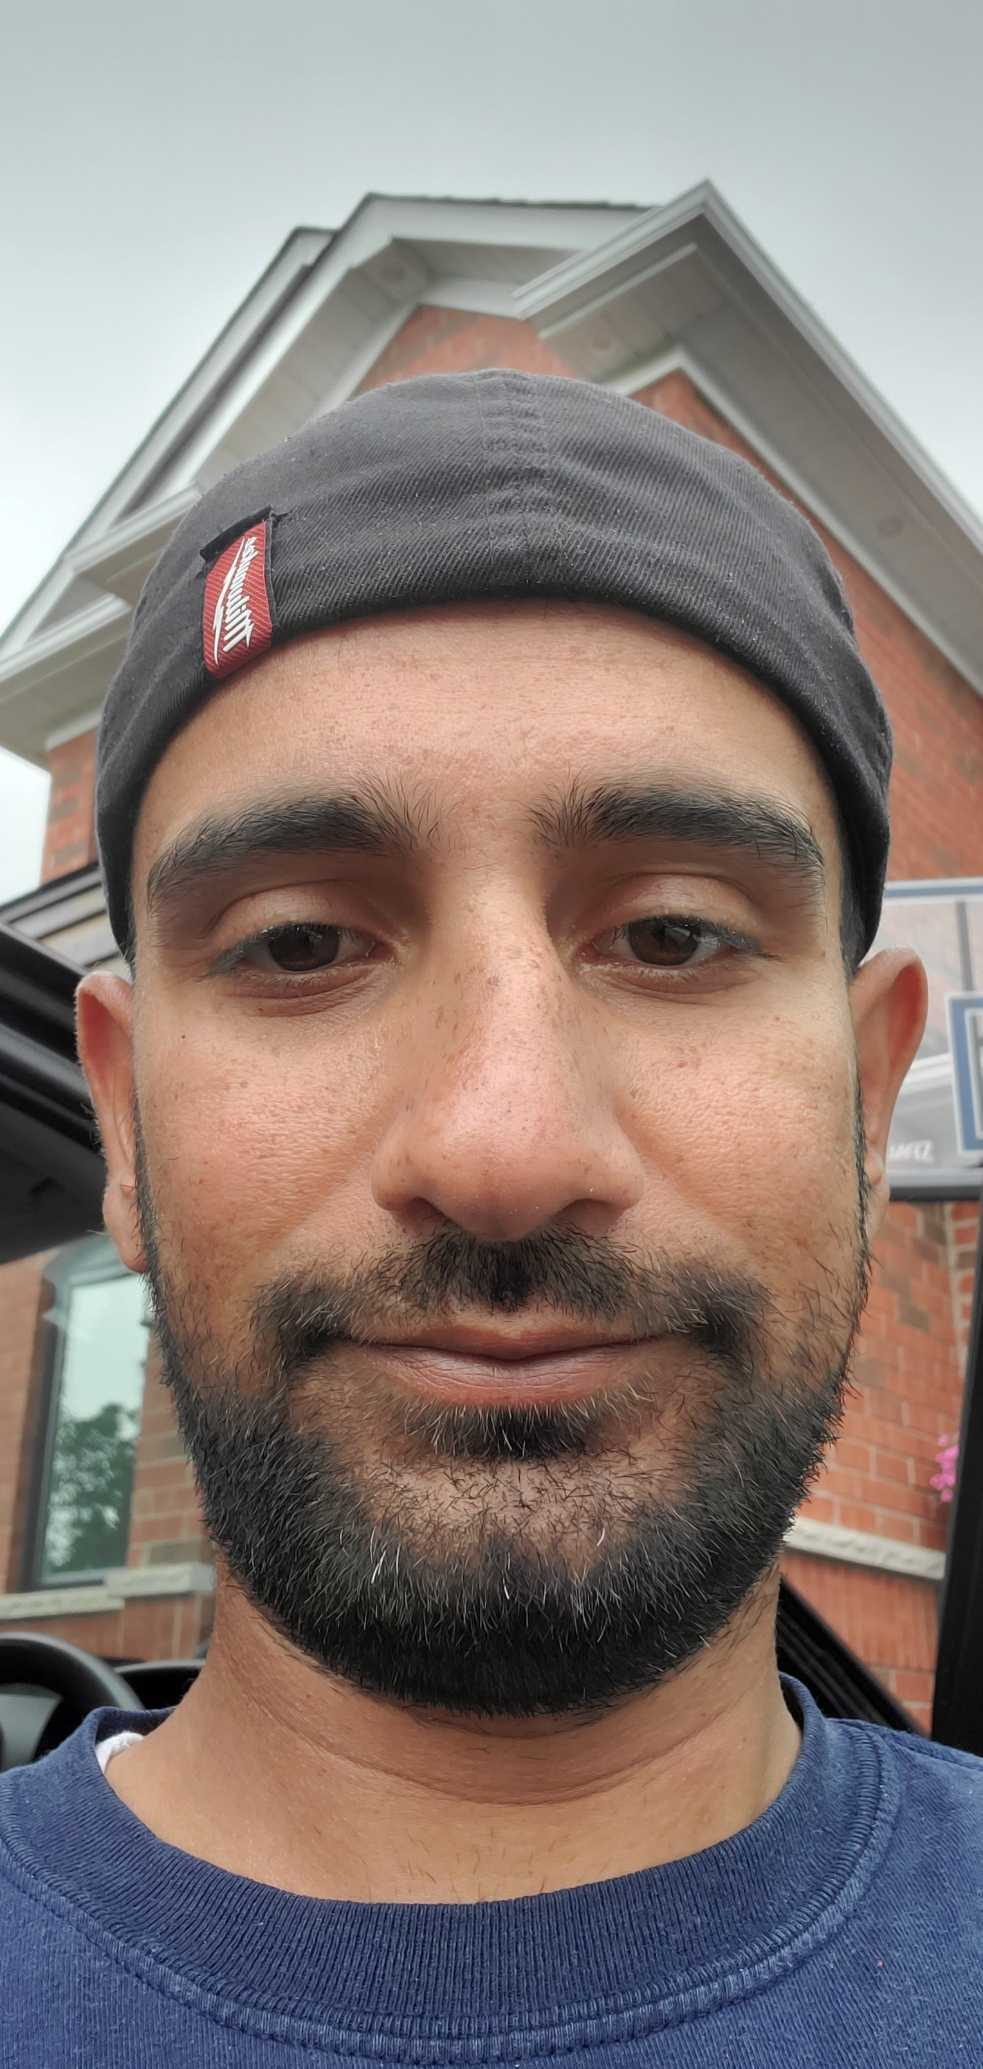 Image of a man with a mustache, beard, and beanie hat.